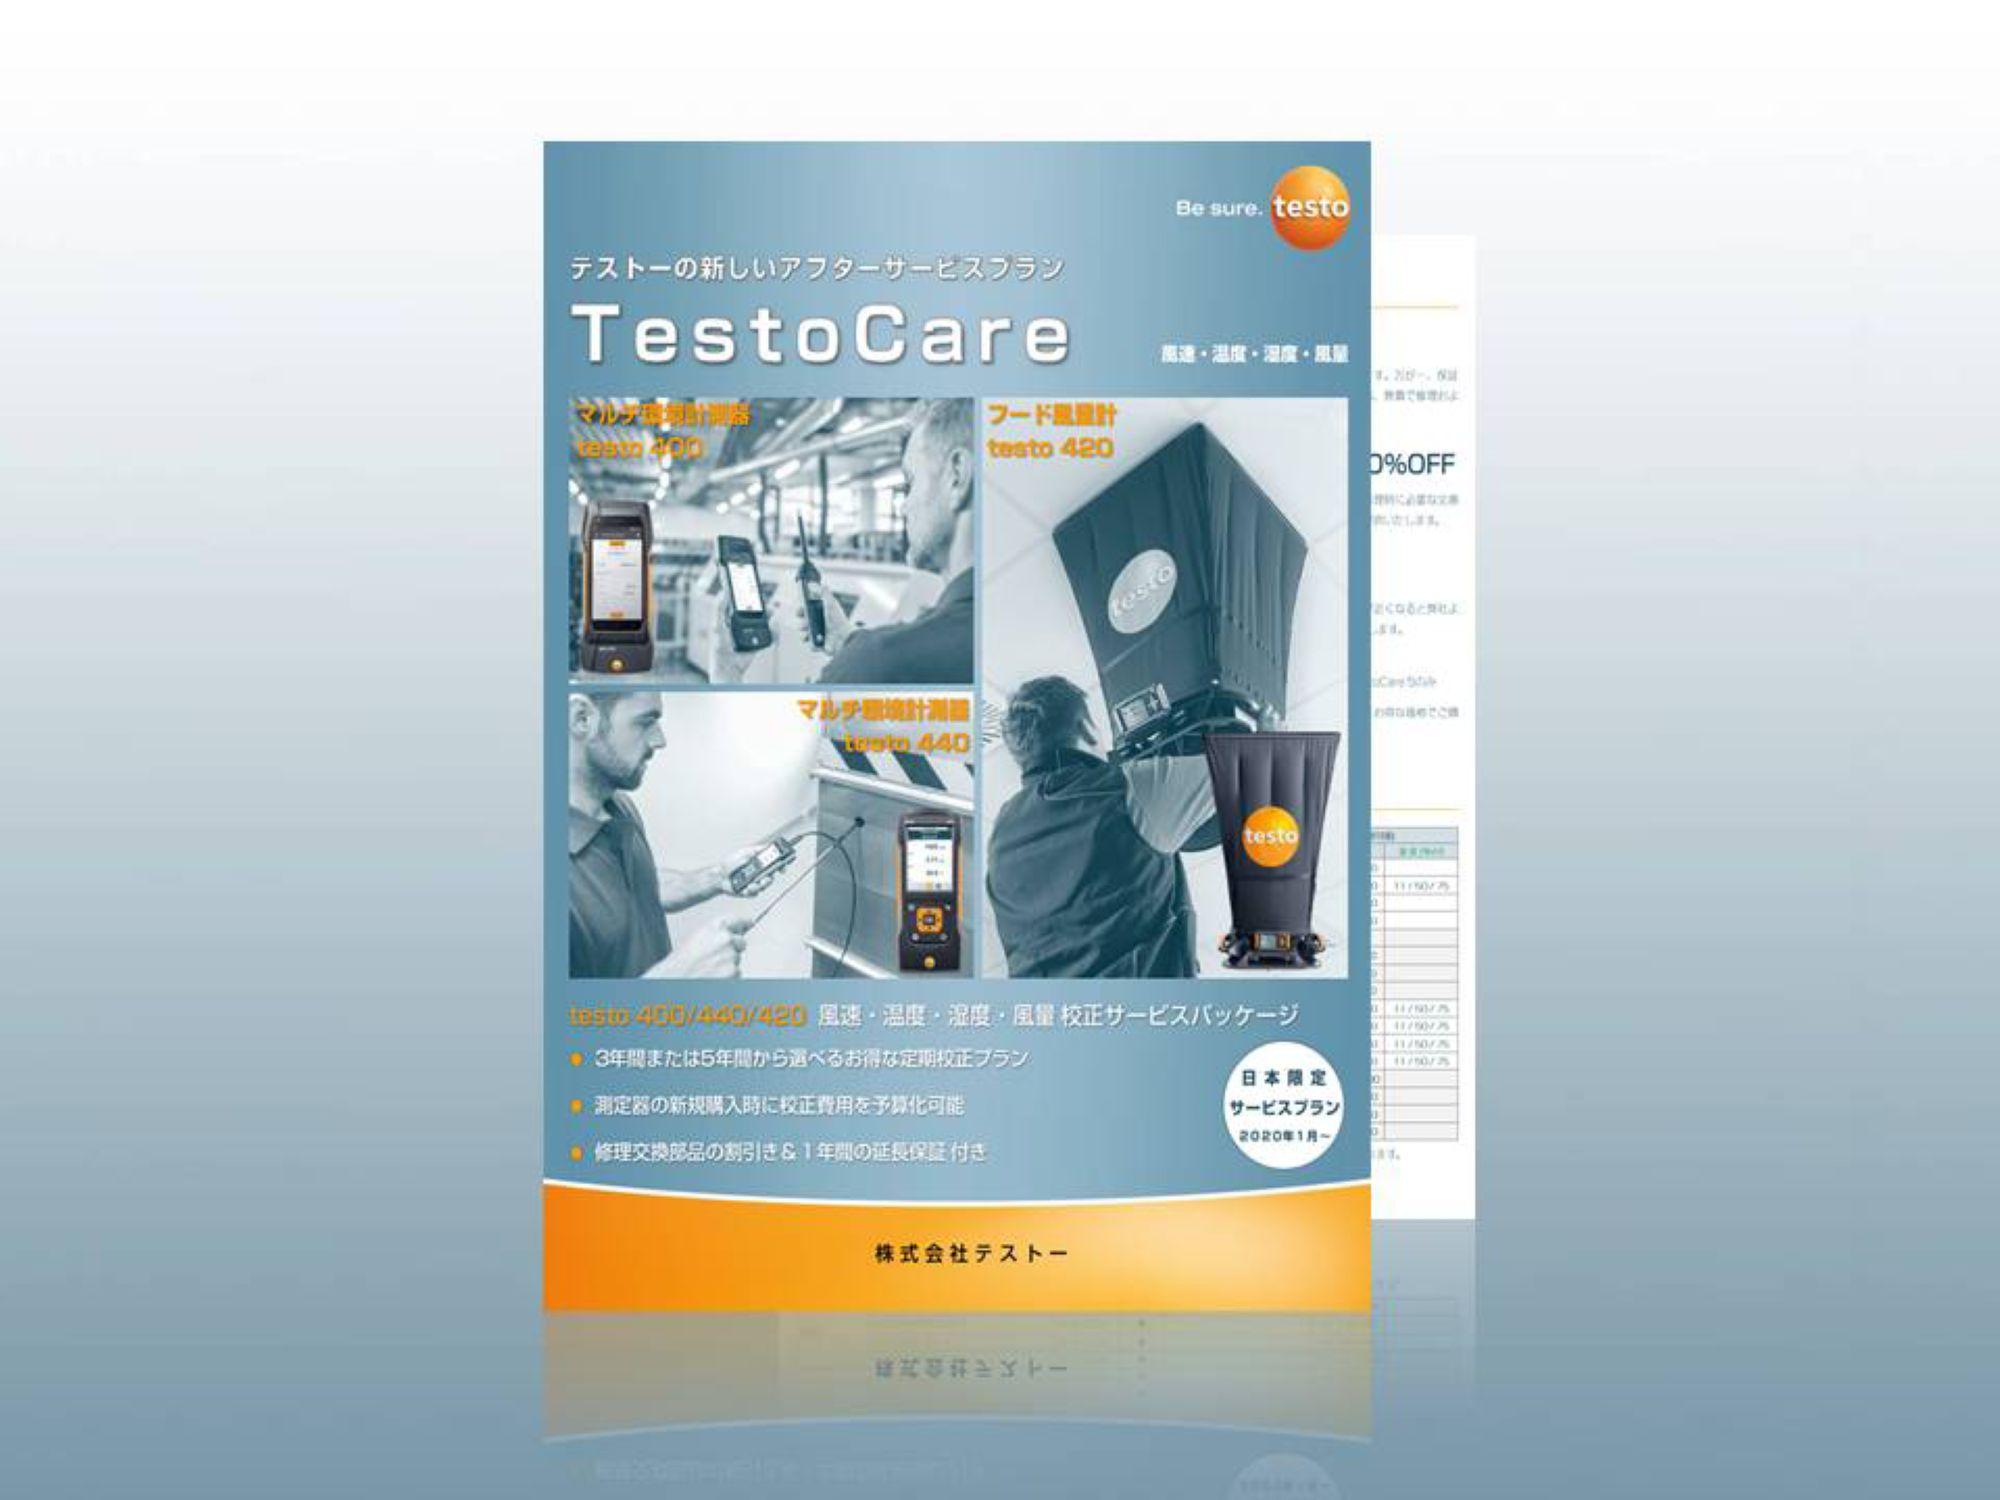 jp_TestoCare_flow_thumbnail.png